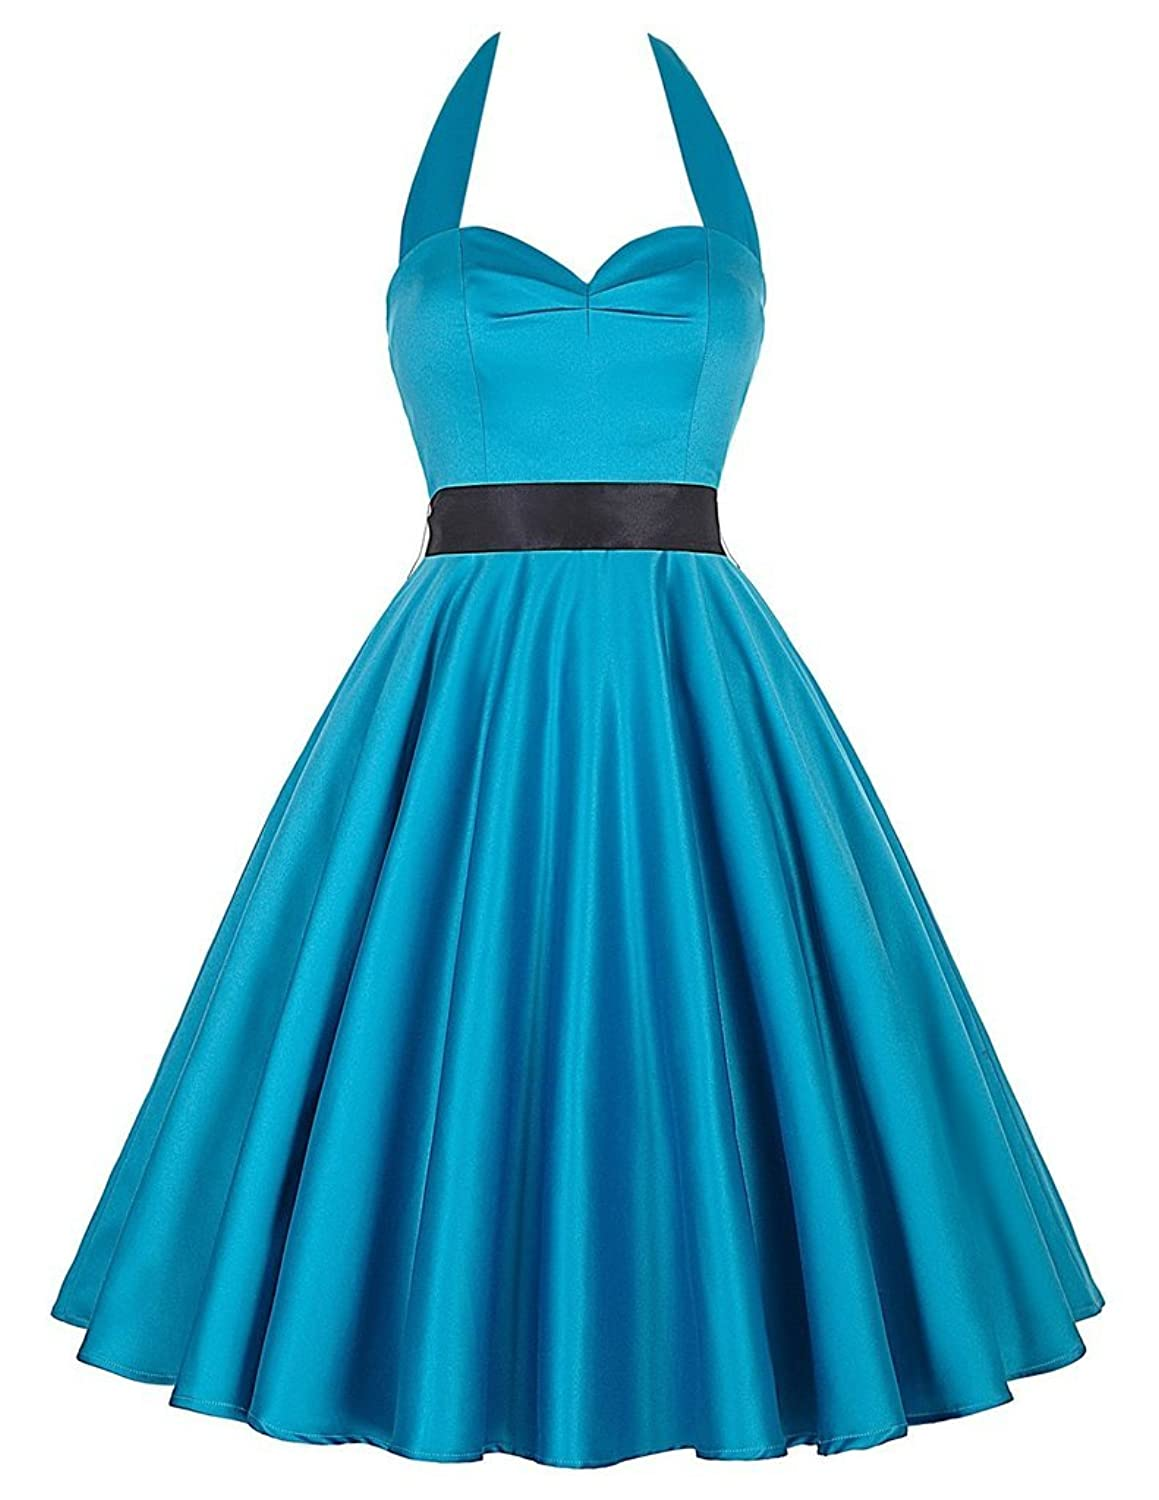 Women's Vintage 1950's Halter Knee-Length Cocktail Party Dresses